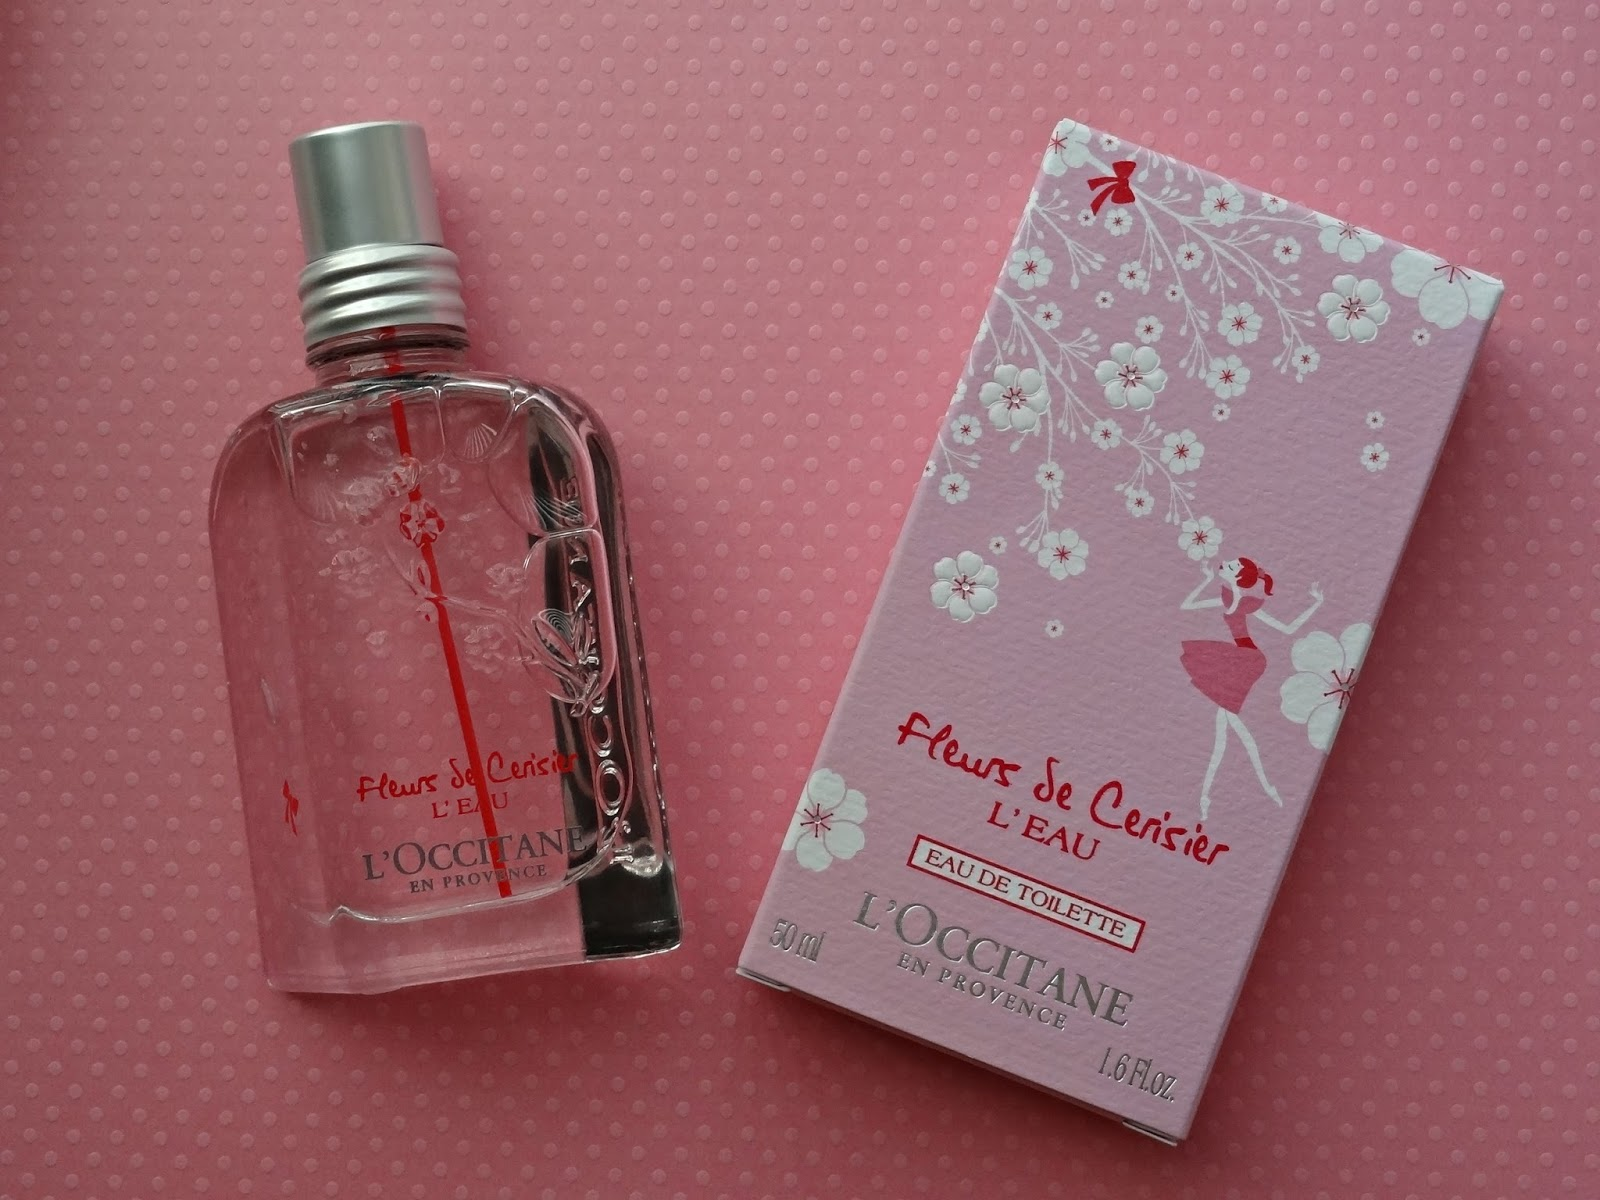 L'Occitane Fleurs de Cerisier L'Eau Collection - Eau de Toilette and Shower Milk